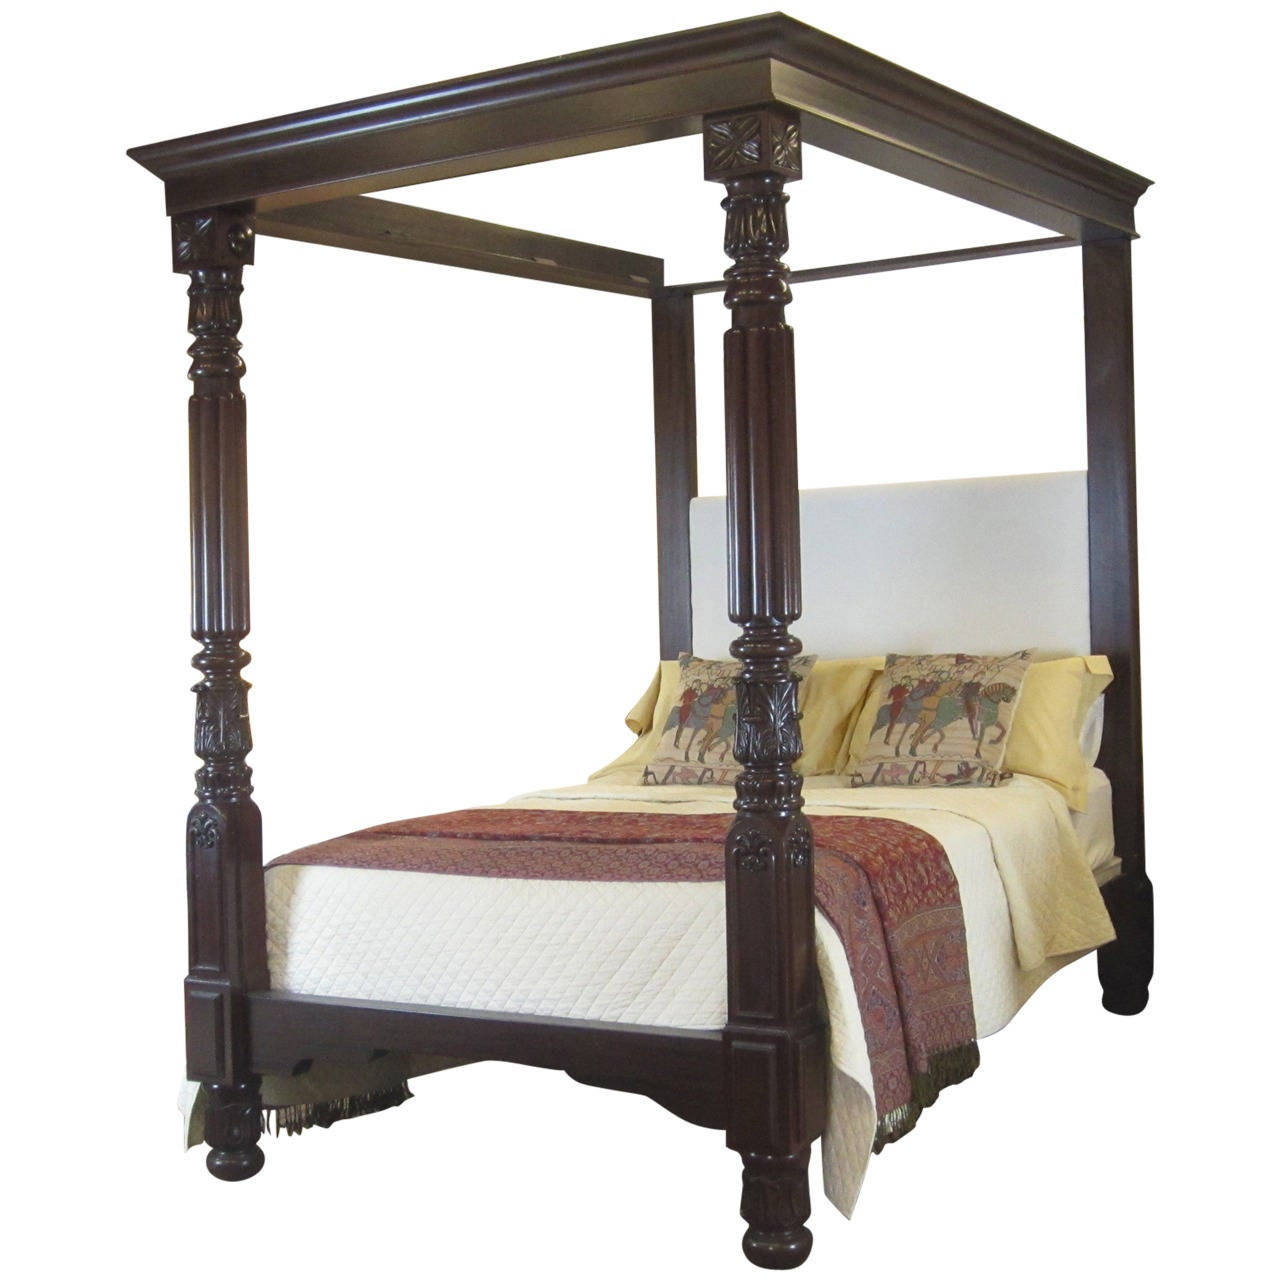 Mahogany four poster bed w4p3 for sale at 1stdibs - Four poster bedroom sets for sale ...